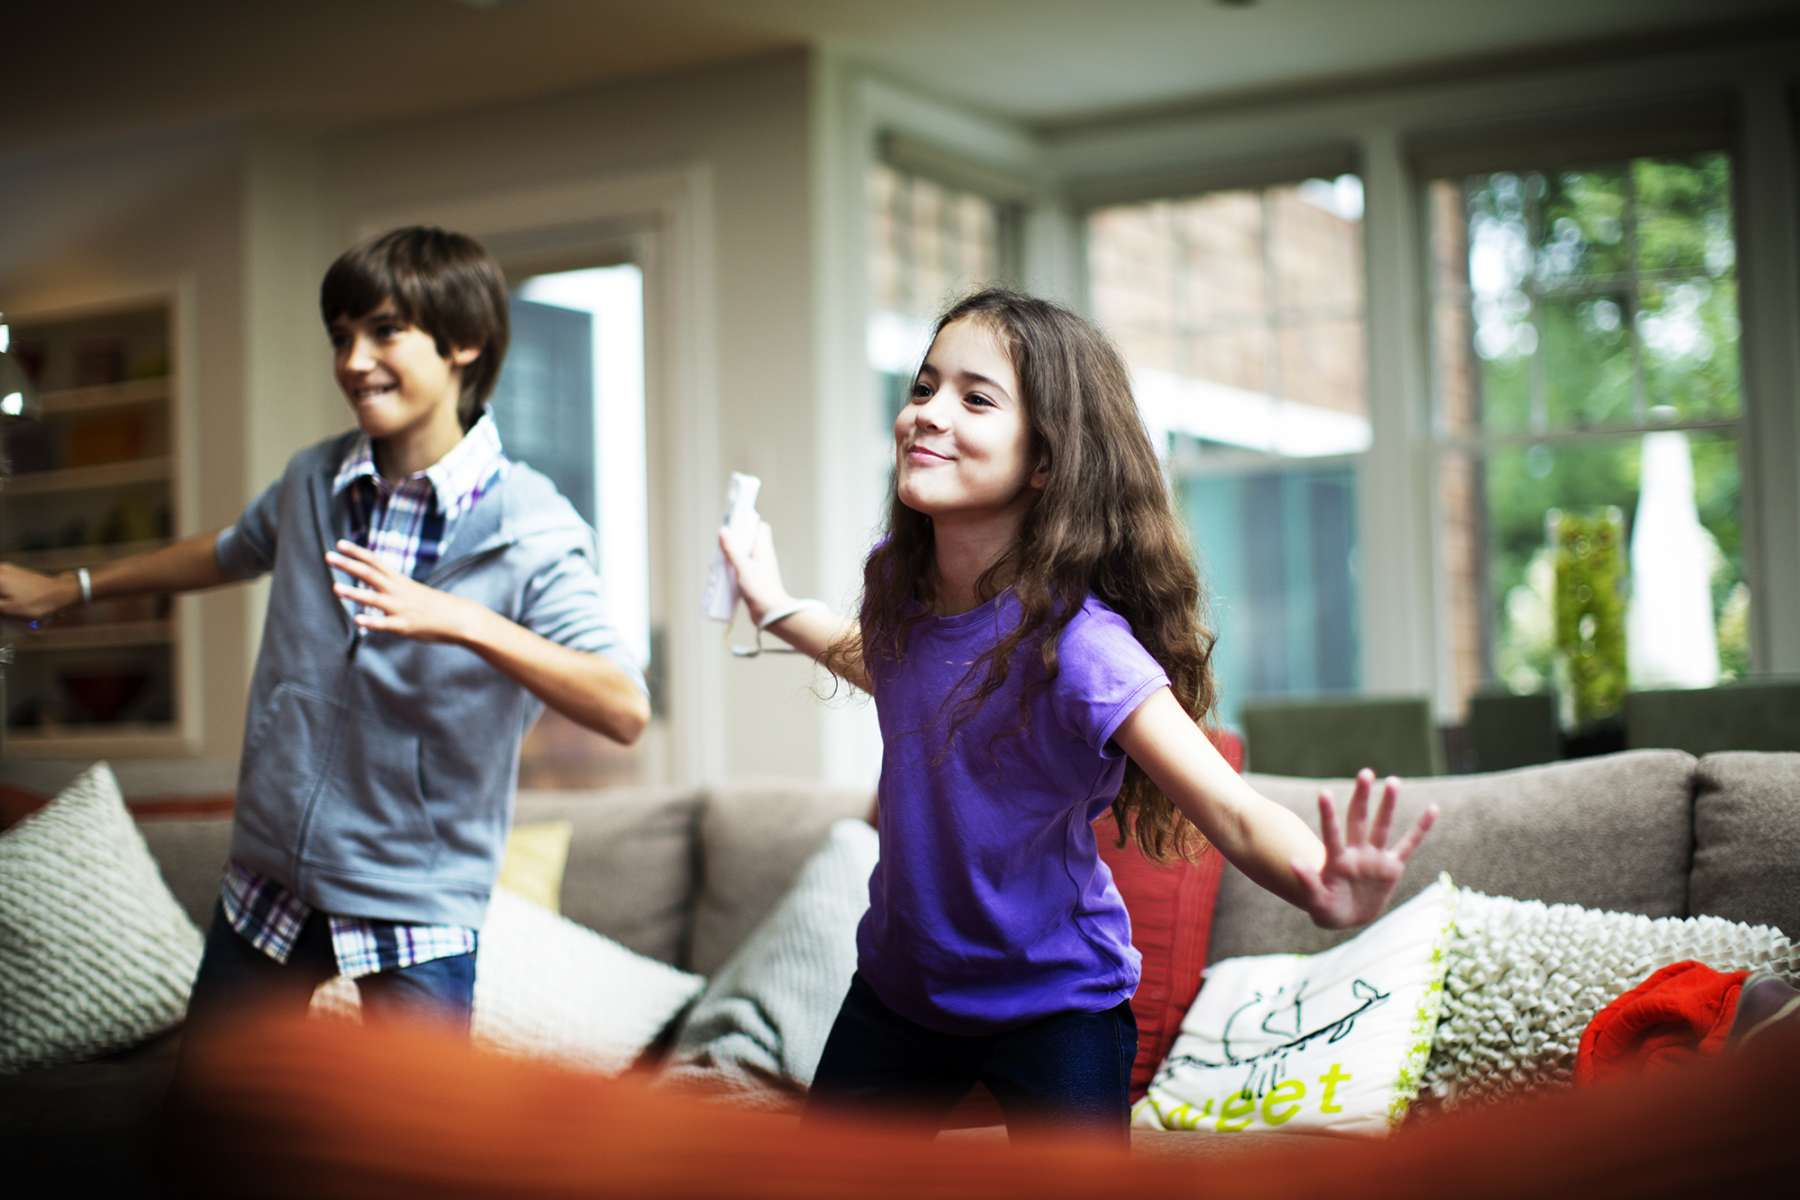 56c3c5c3b2aa1_Christian_Kozowyk_kids_playing_wii